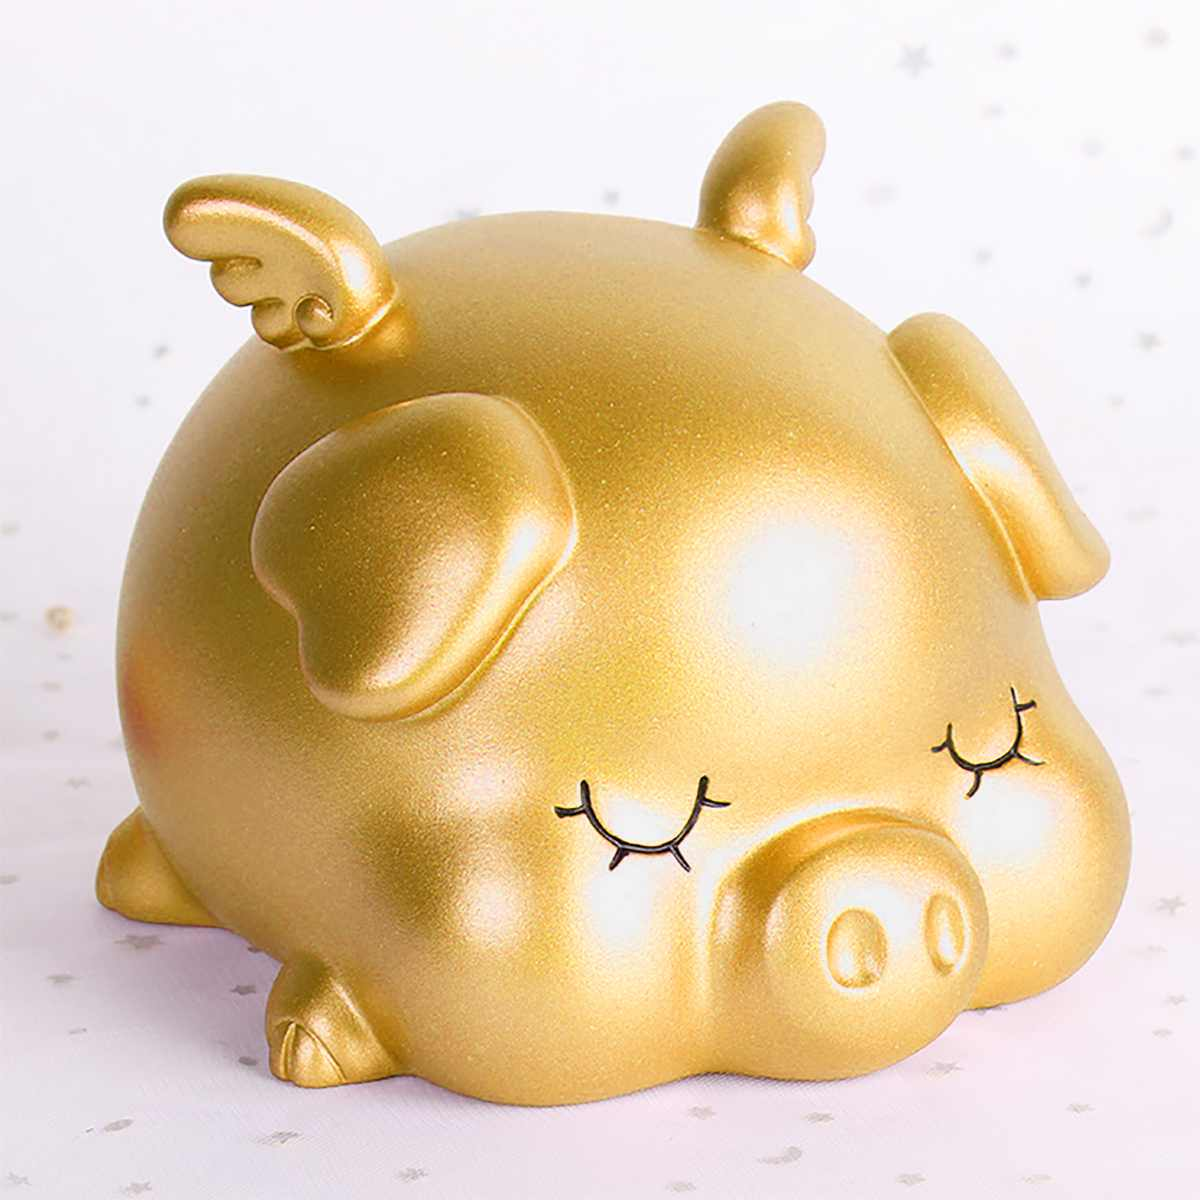 Efficient Feng Shui Chinese Year Of The Pig Ceramic Gold Piggy Bank Collectibles Holiday & Seasonal